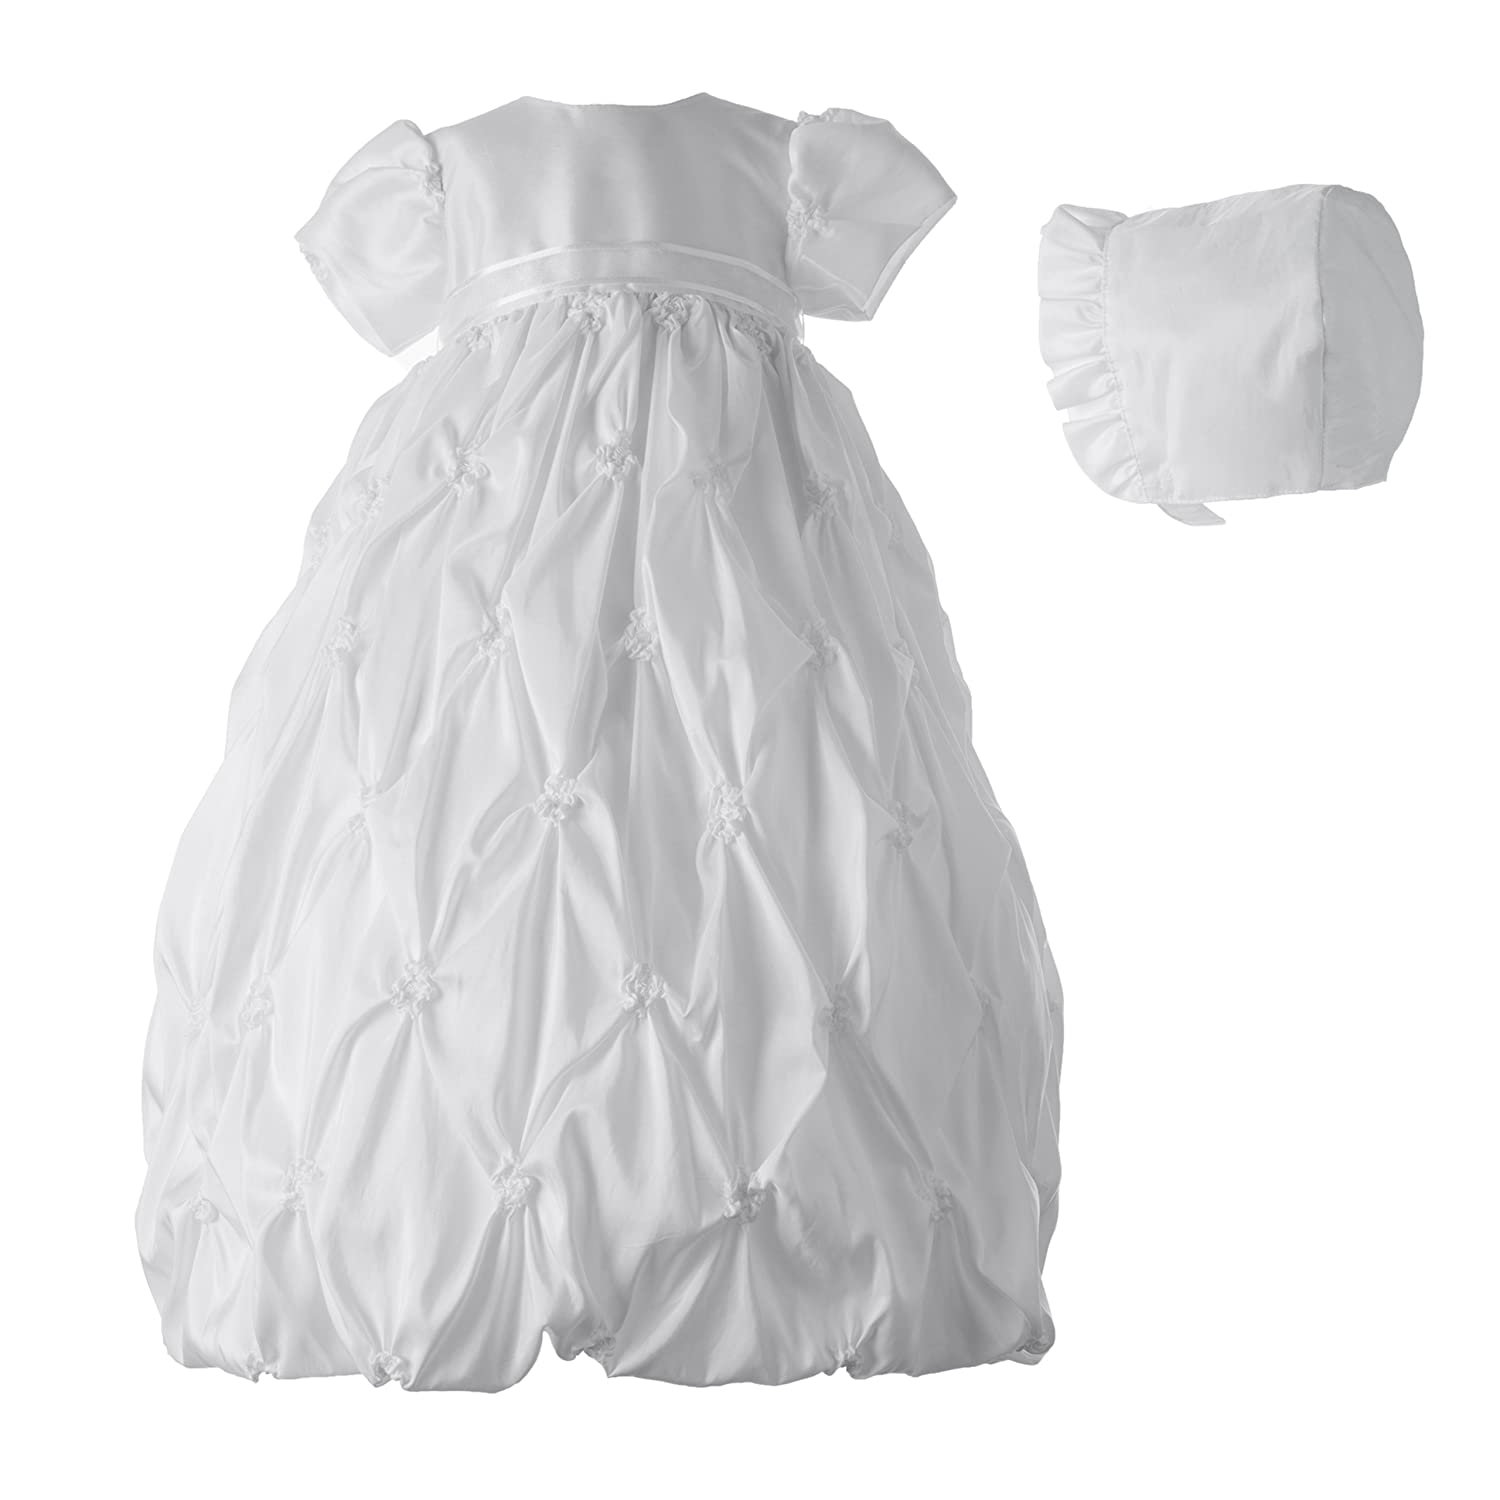 Lauren Madison baby girl Christening Baptism Newborn Taffeta Gown With Embroidery Haddad Brothers Clothing 1943